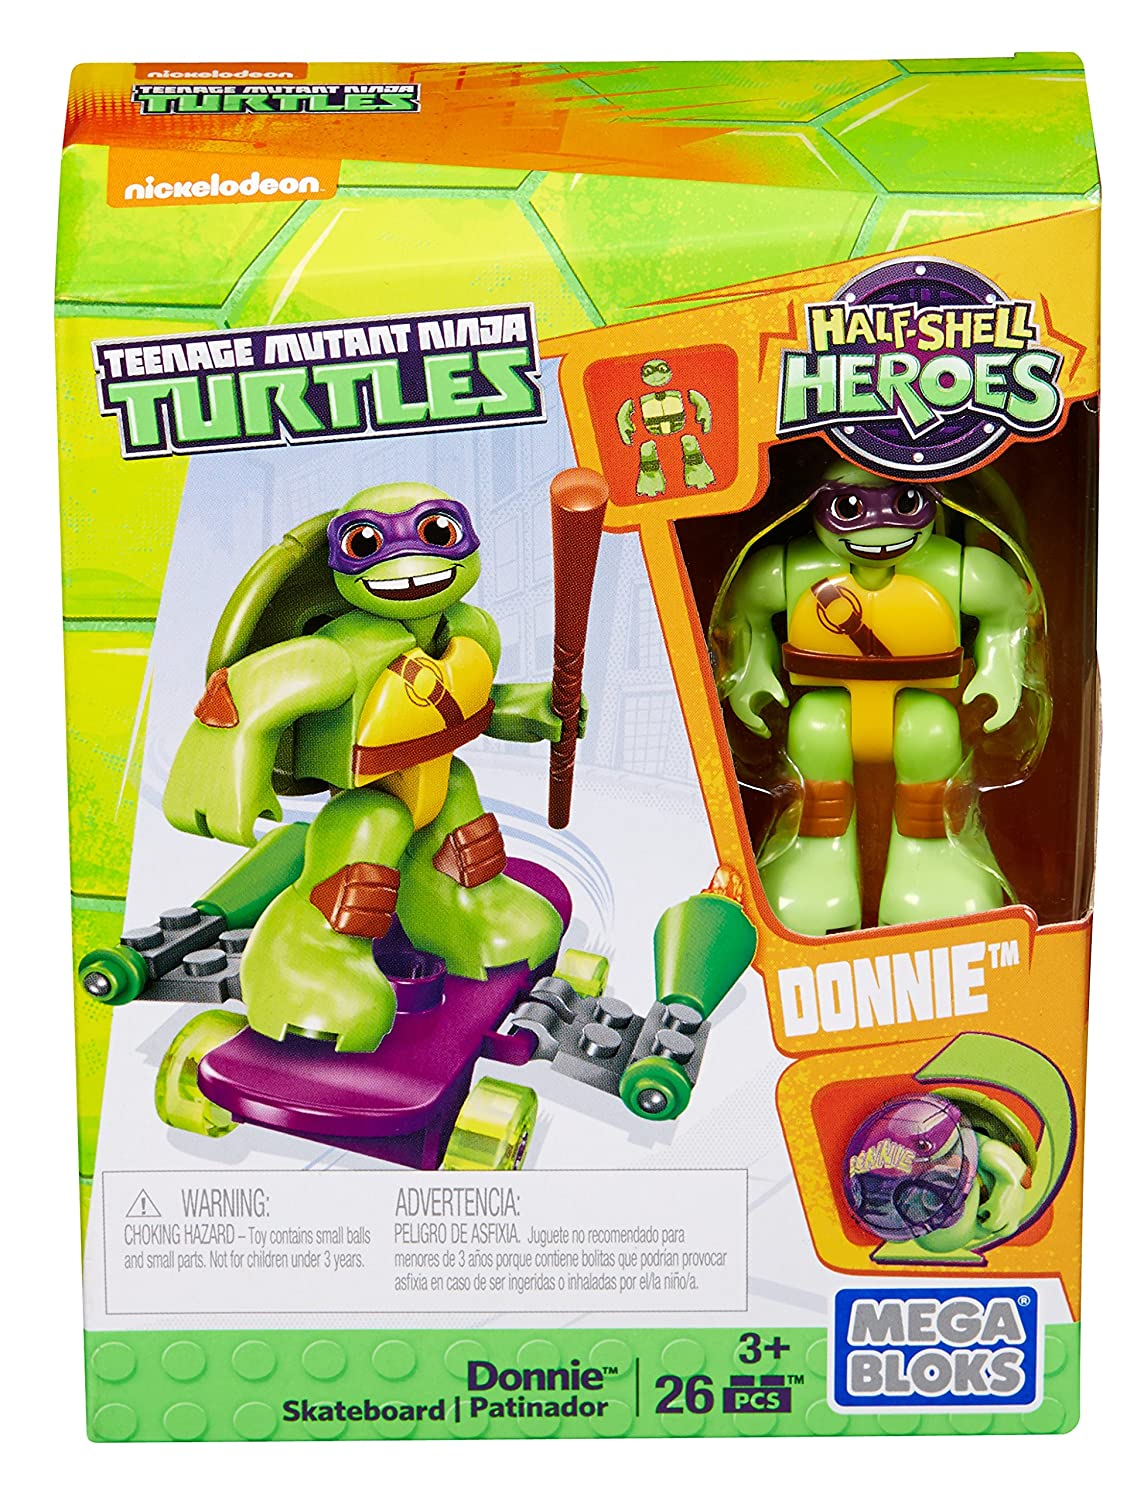 Mega Bloks DMW40 - Figura de Juguete Teenage Mutant Ninja Turtles Donnie con monopatín